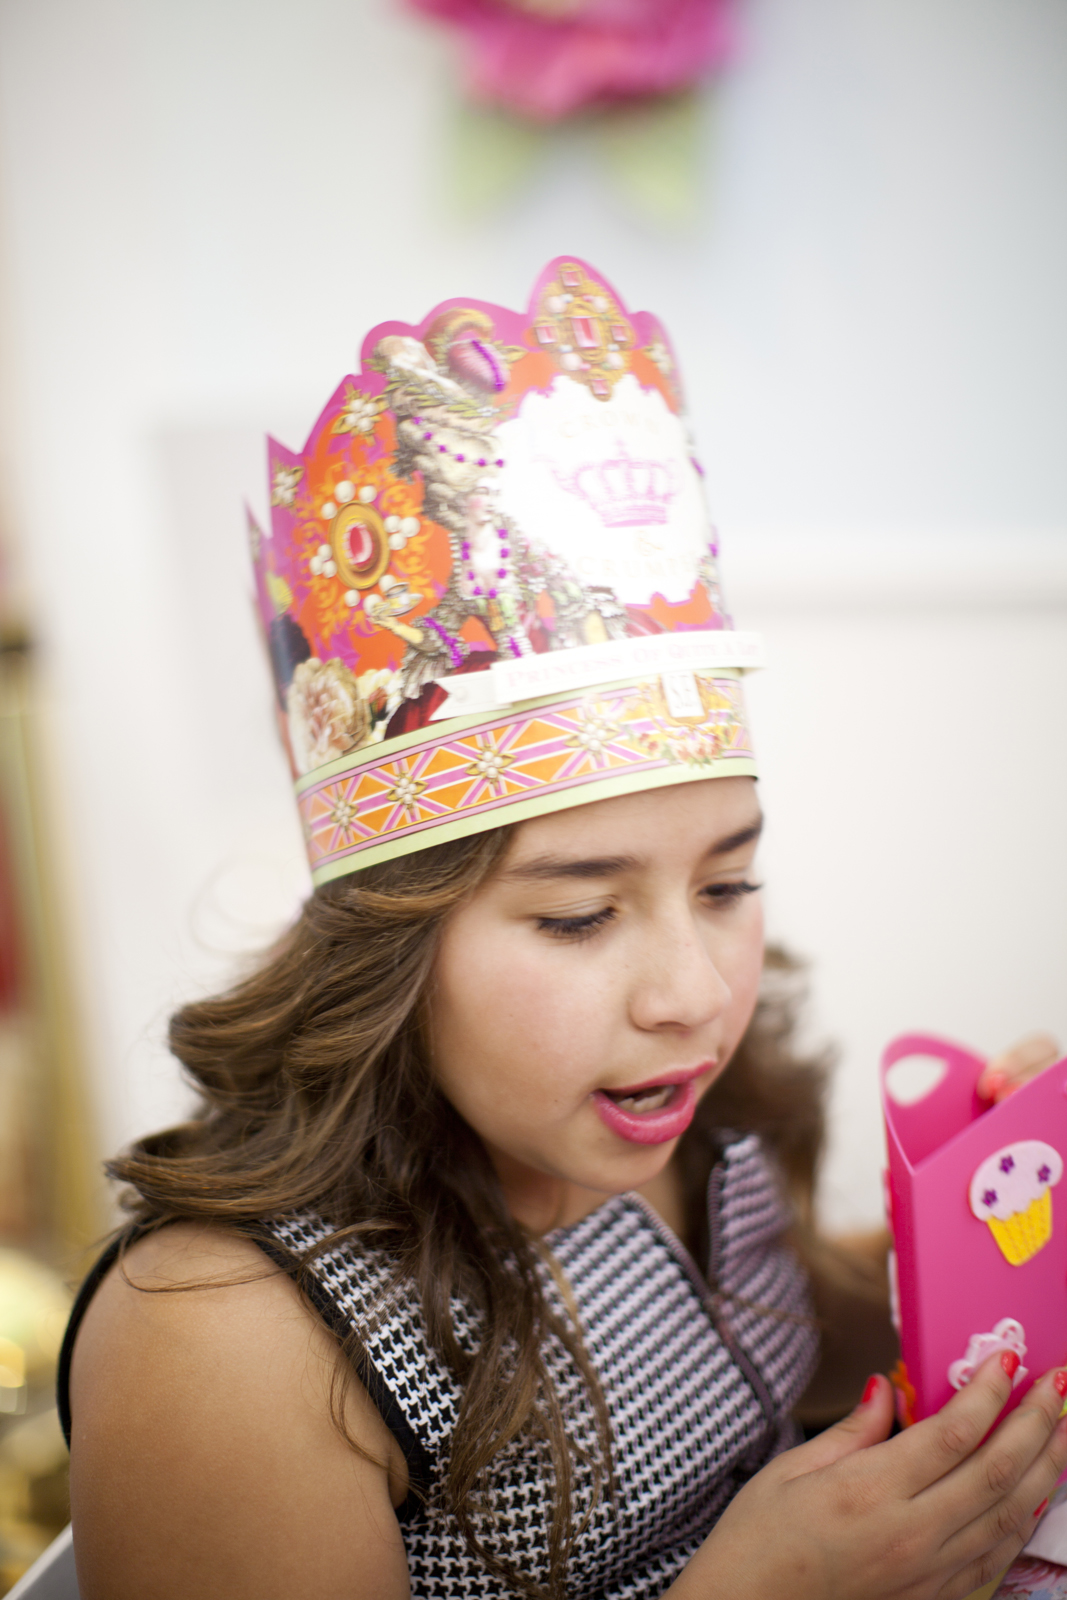 sophia_tea_party_crown_and_crumpet_san_francisco_photography_043.jpg